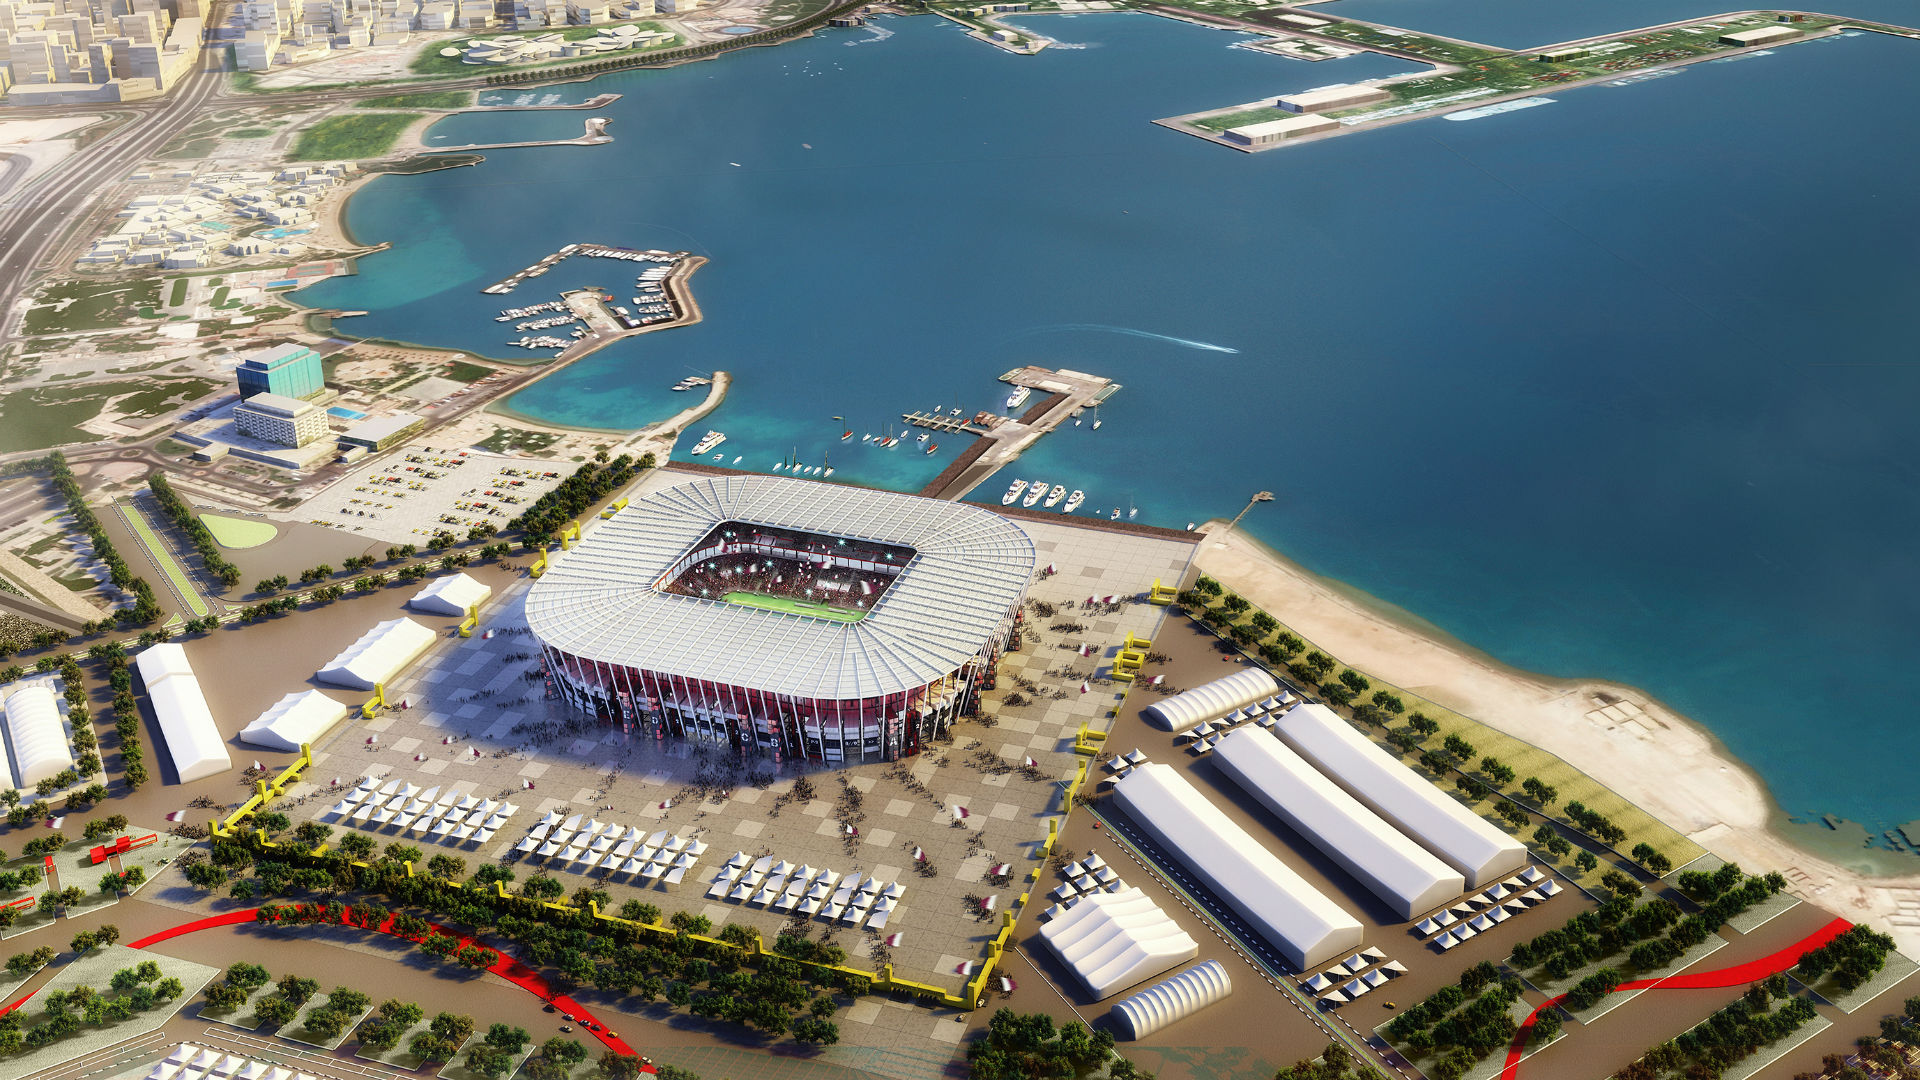 Ras Abu Aboud Stadium Qatar 2022 World Cup